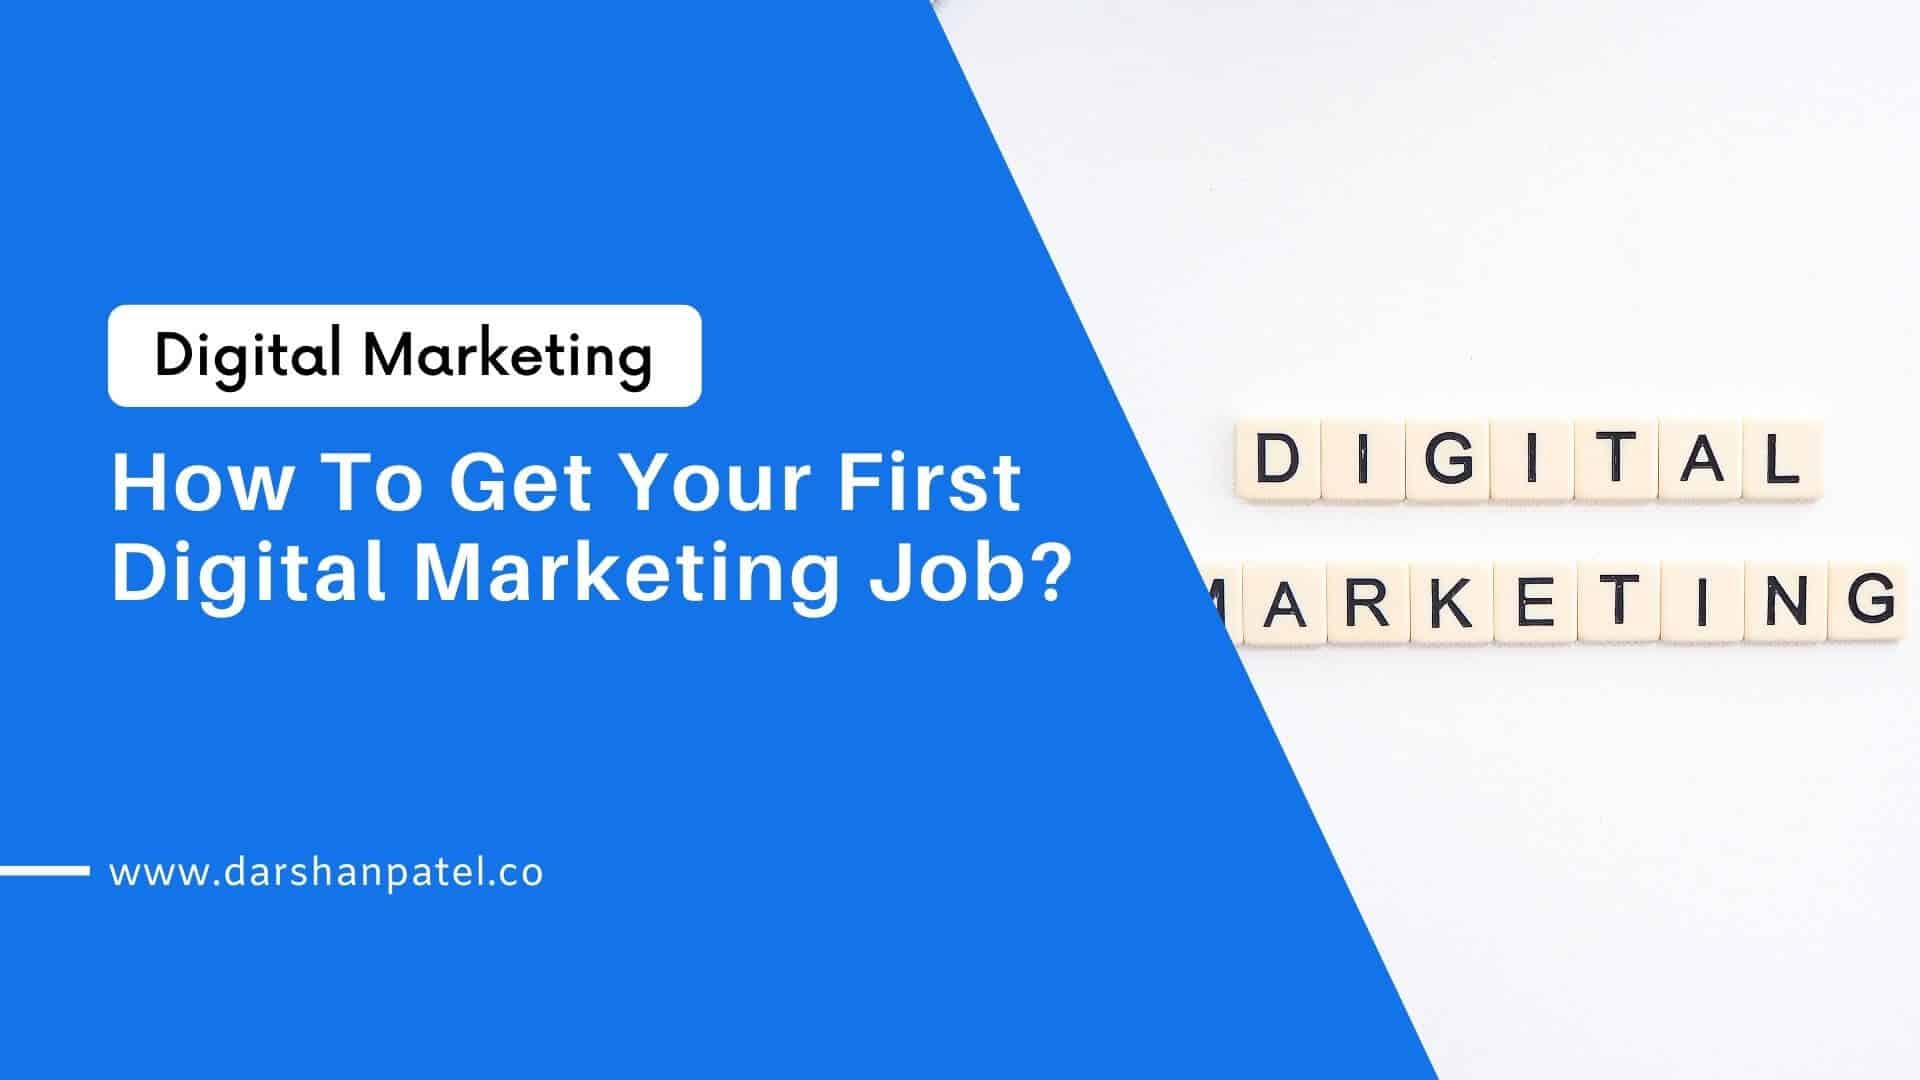 How To Get Your First Digital Marketing Job Darshan Patel